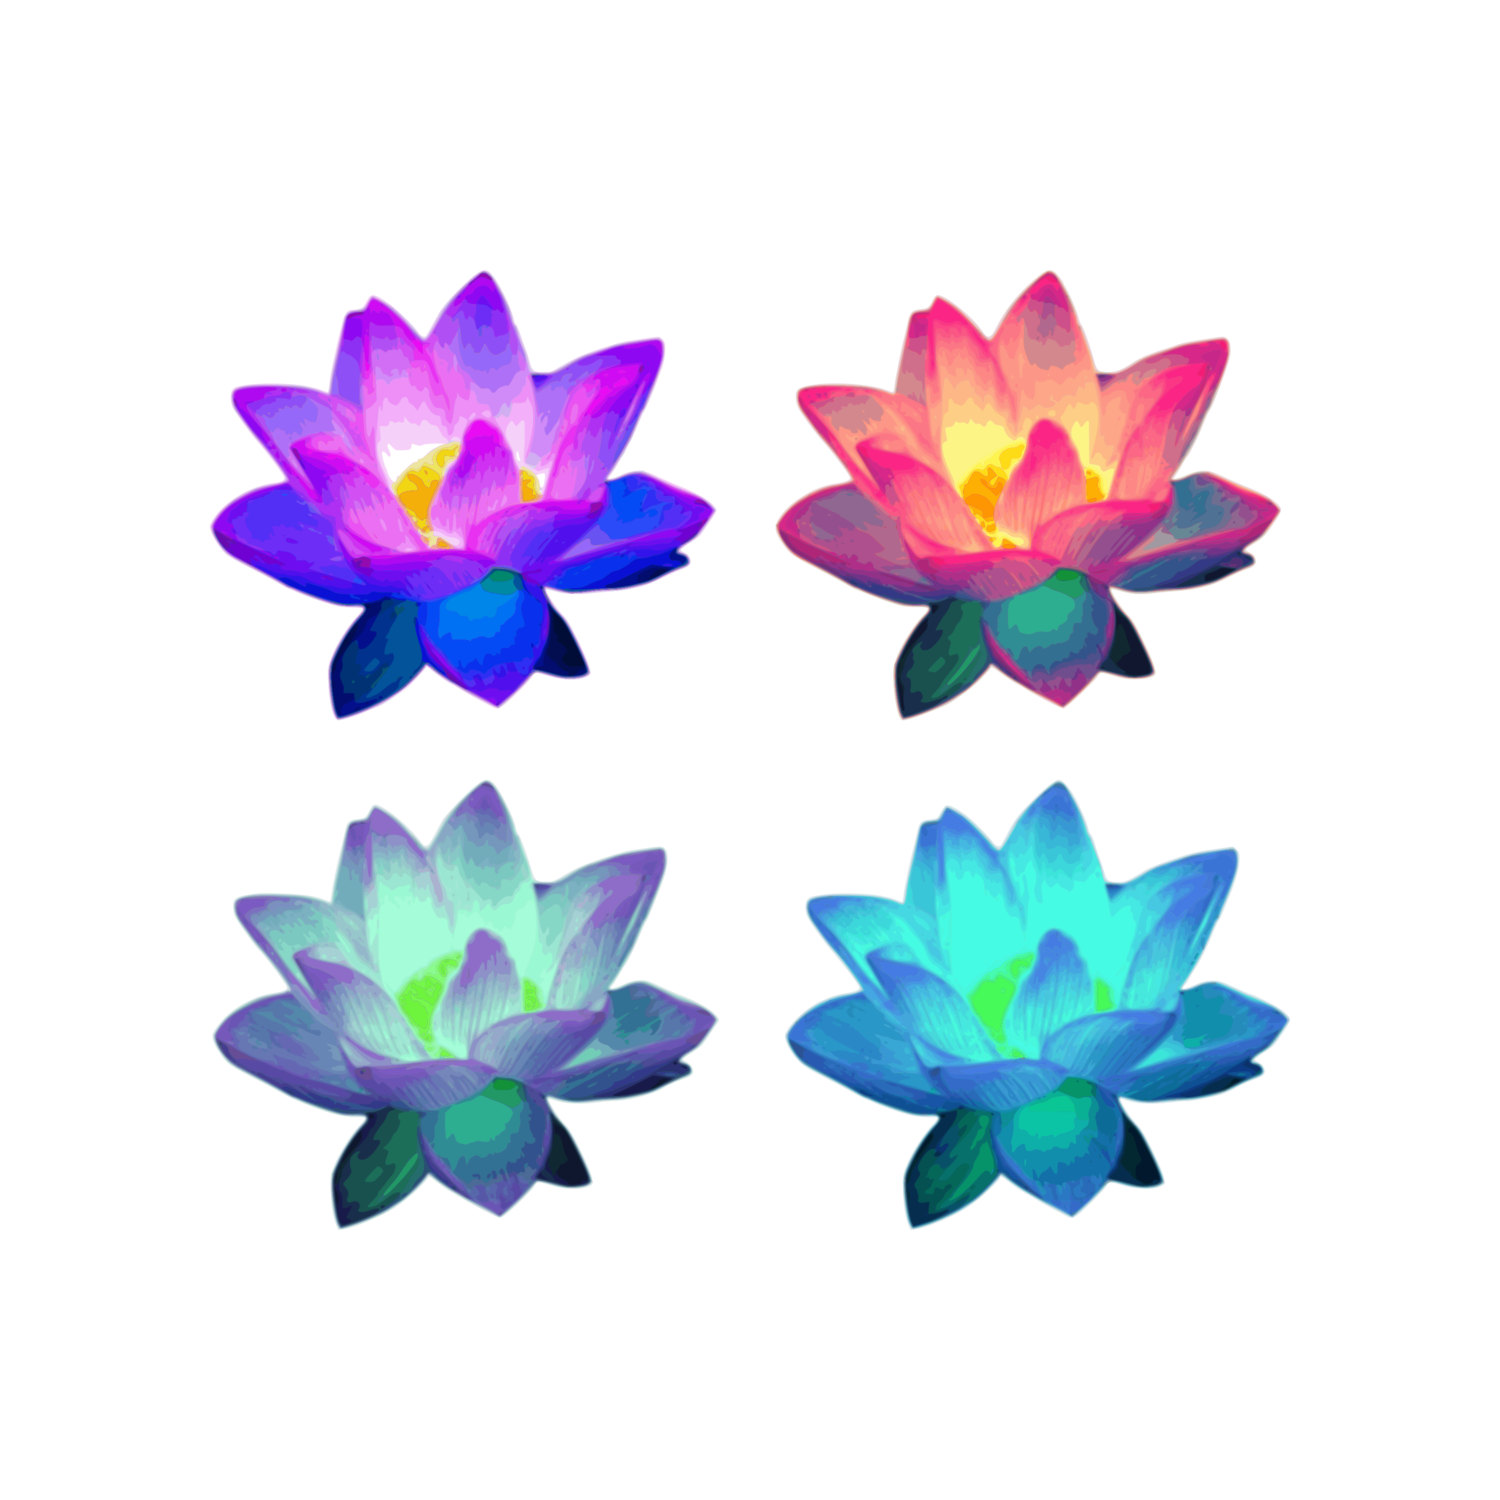 lily flower clipart at getdrawings com free for personal use lily rh getdrawings com water lily pond clipart water lily plant clipart